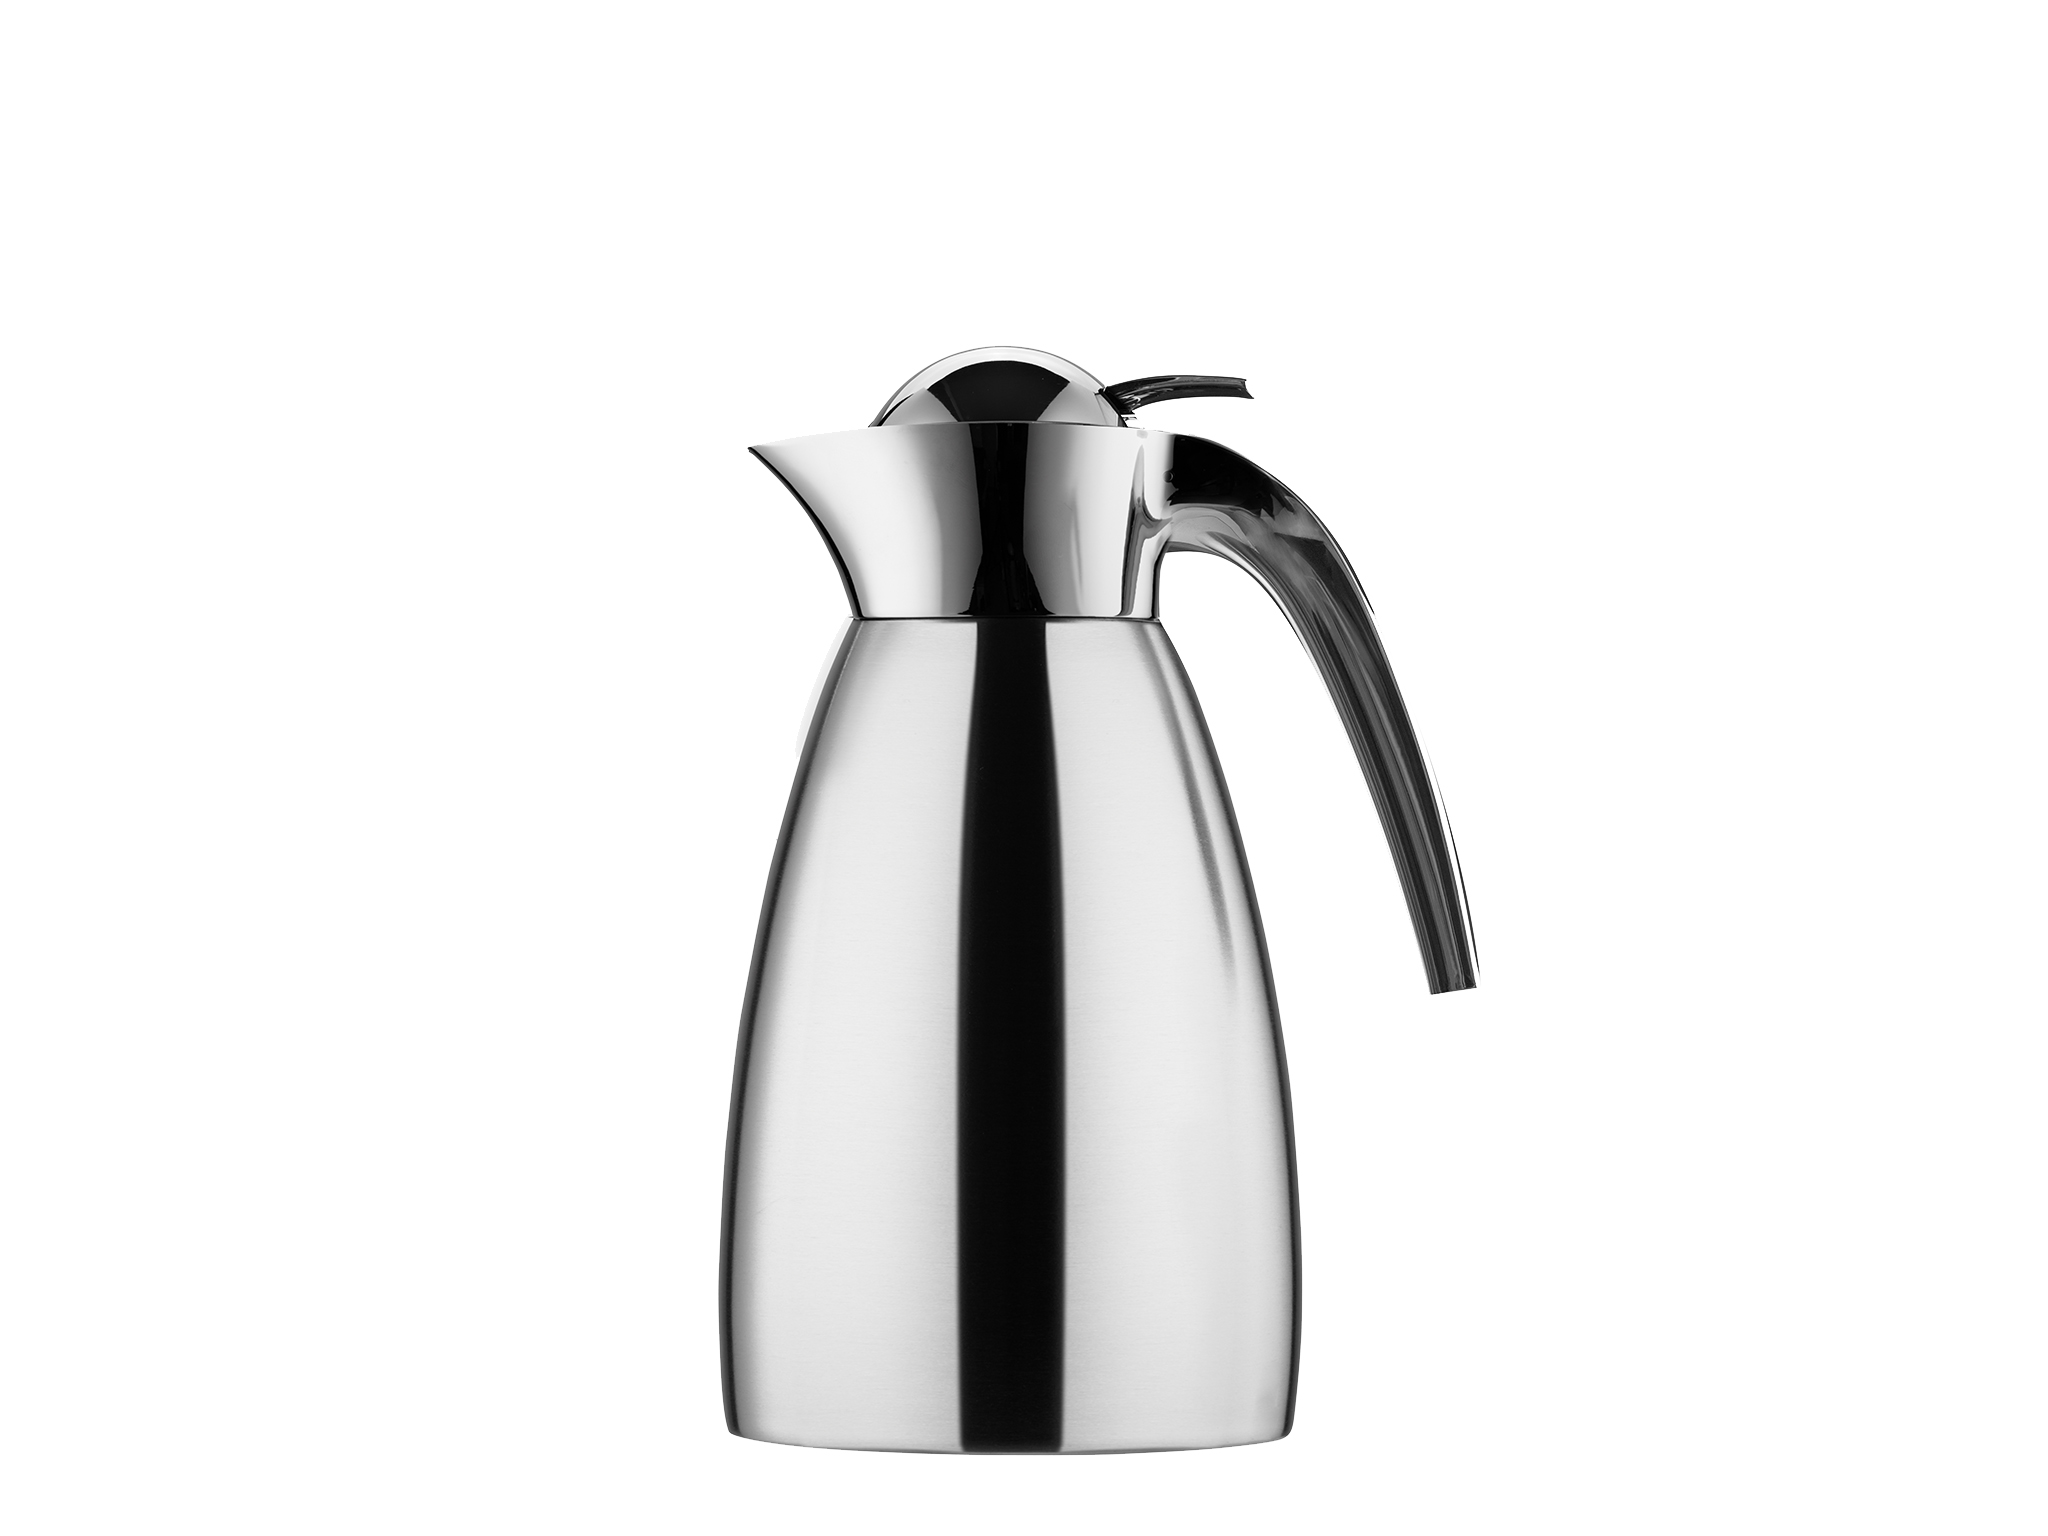 2084 - Pichet incassable inox brillant 1.0 L SPOTLIGHT - Helios